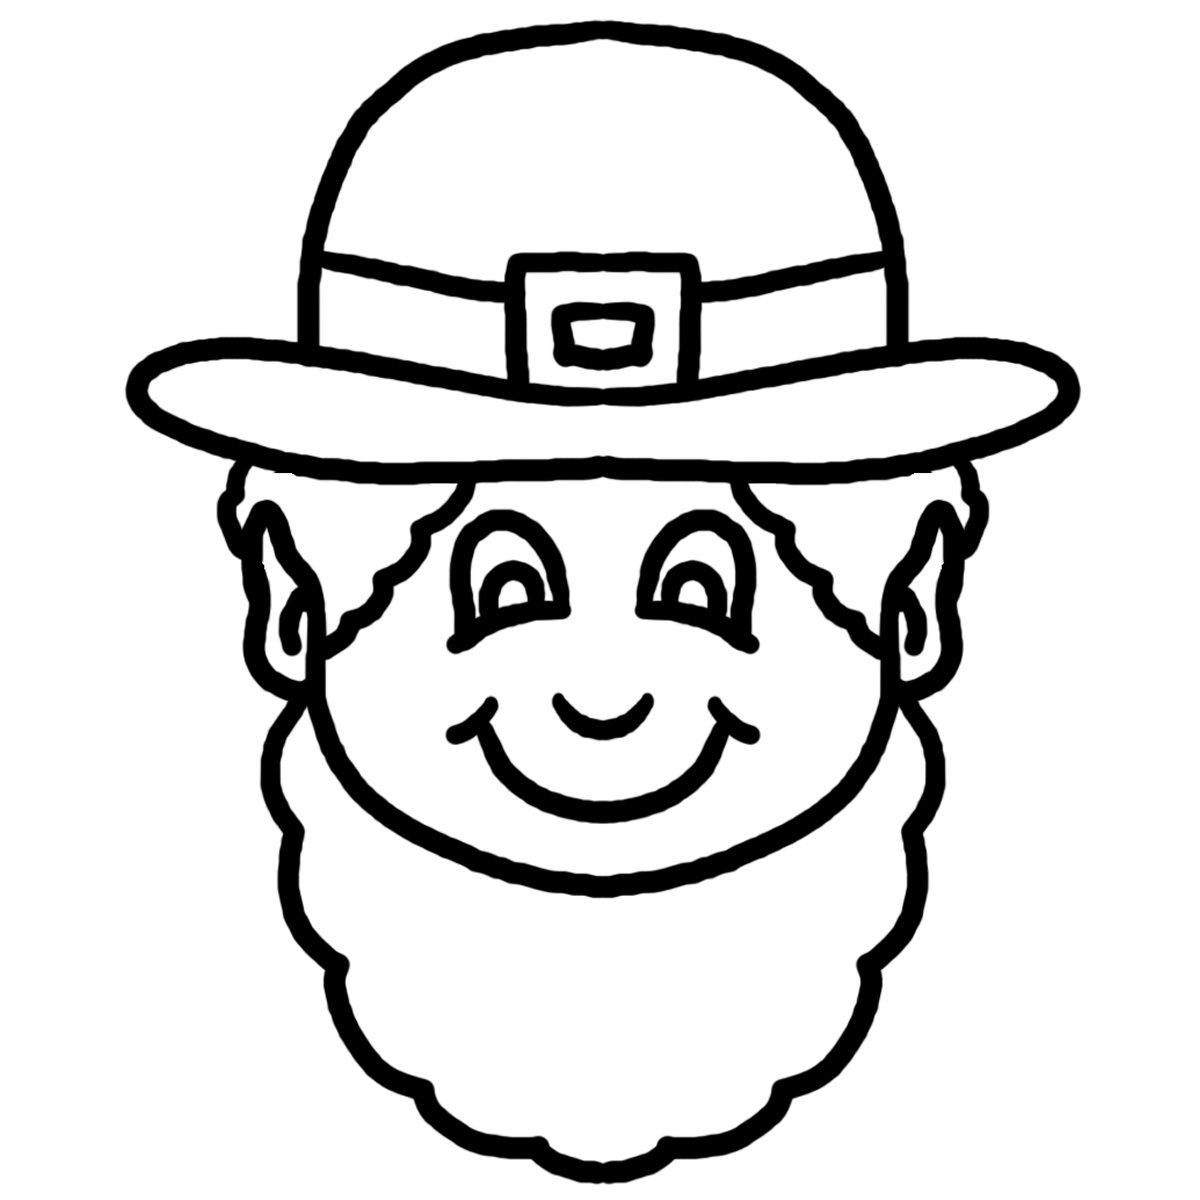 Free Leprechaun Outline, Download Free Clip Art, Free Clip.